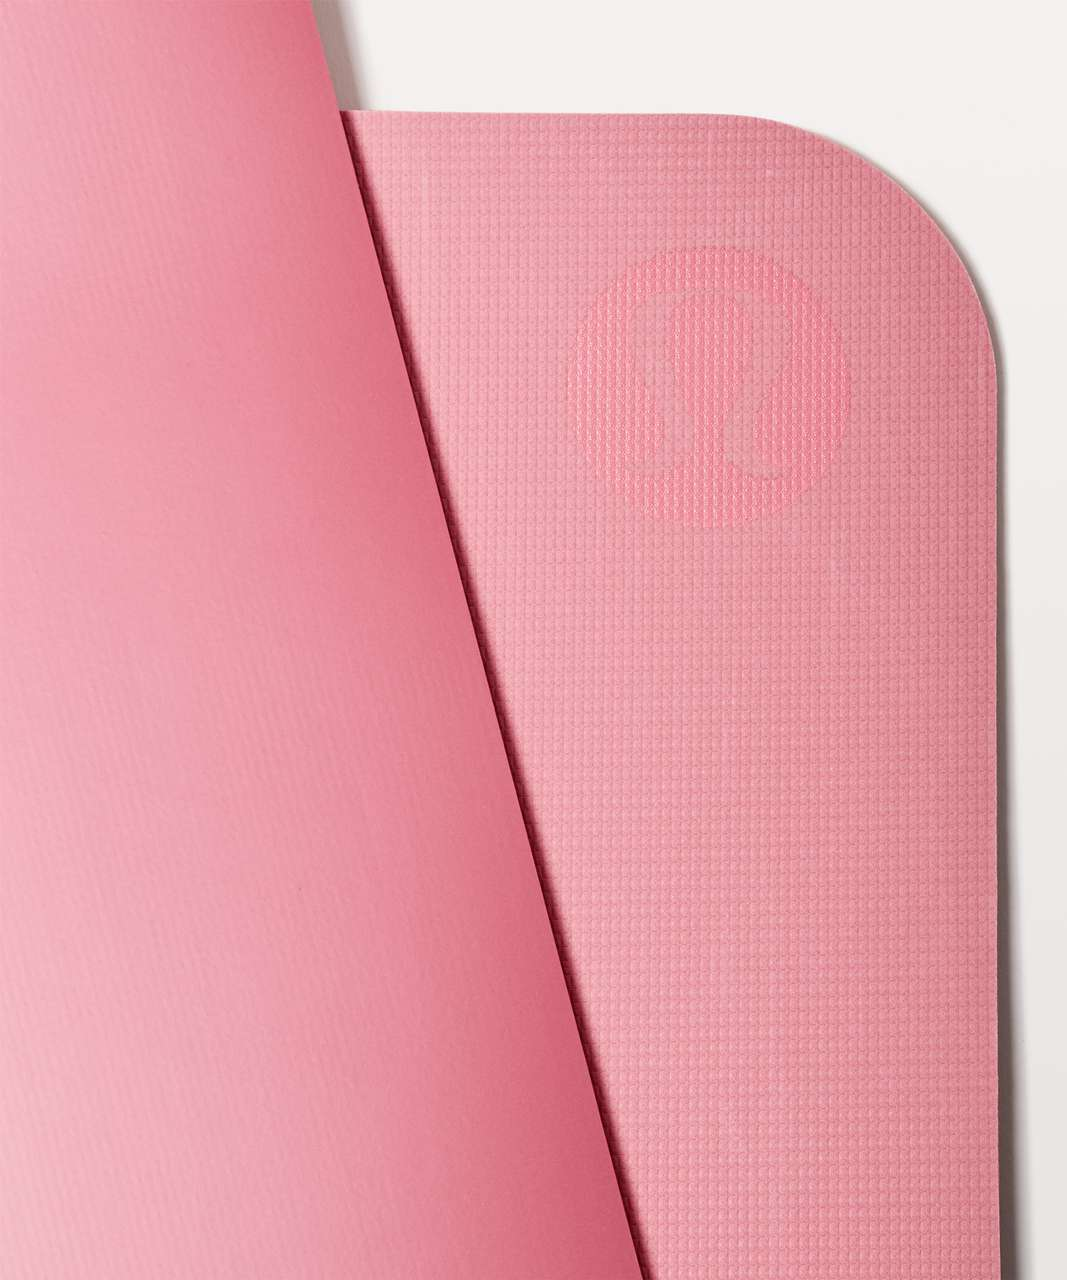 Lululemon The Reversible Mat 5mm - Cherry Dust / Glossy